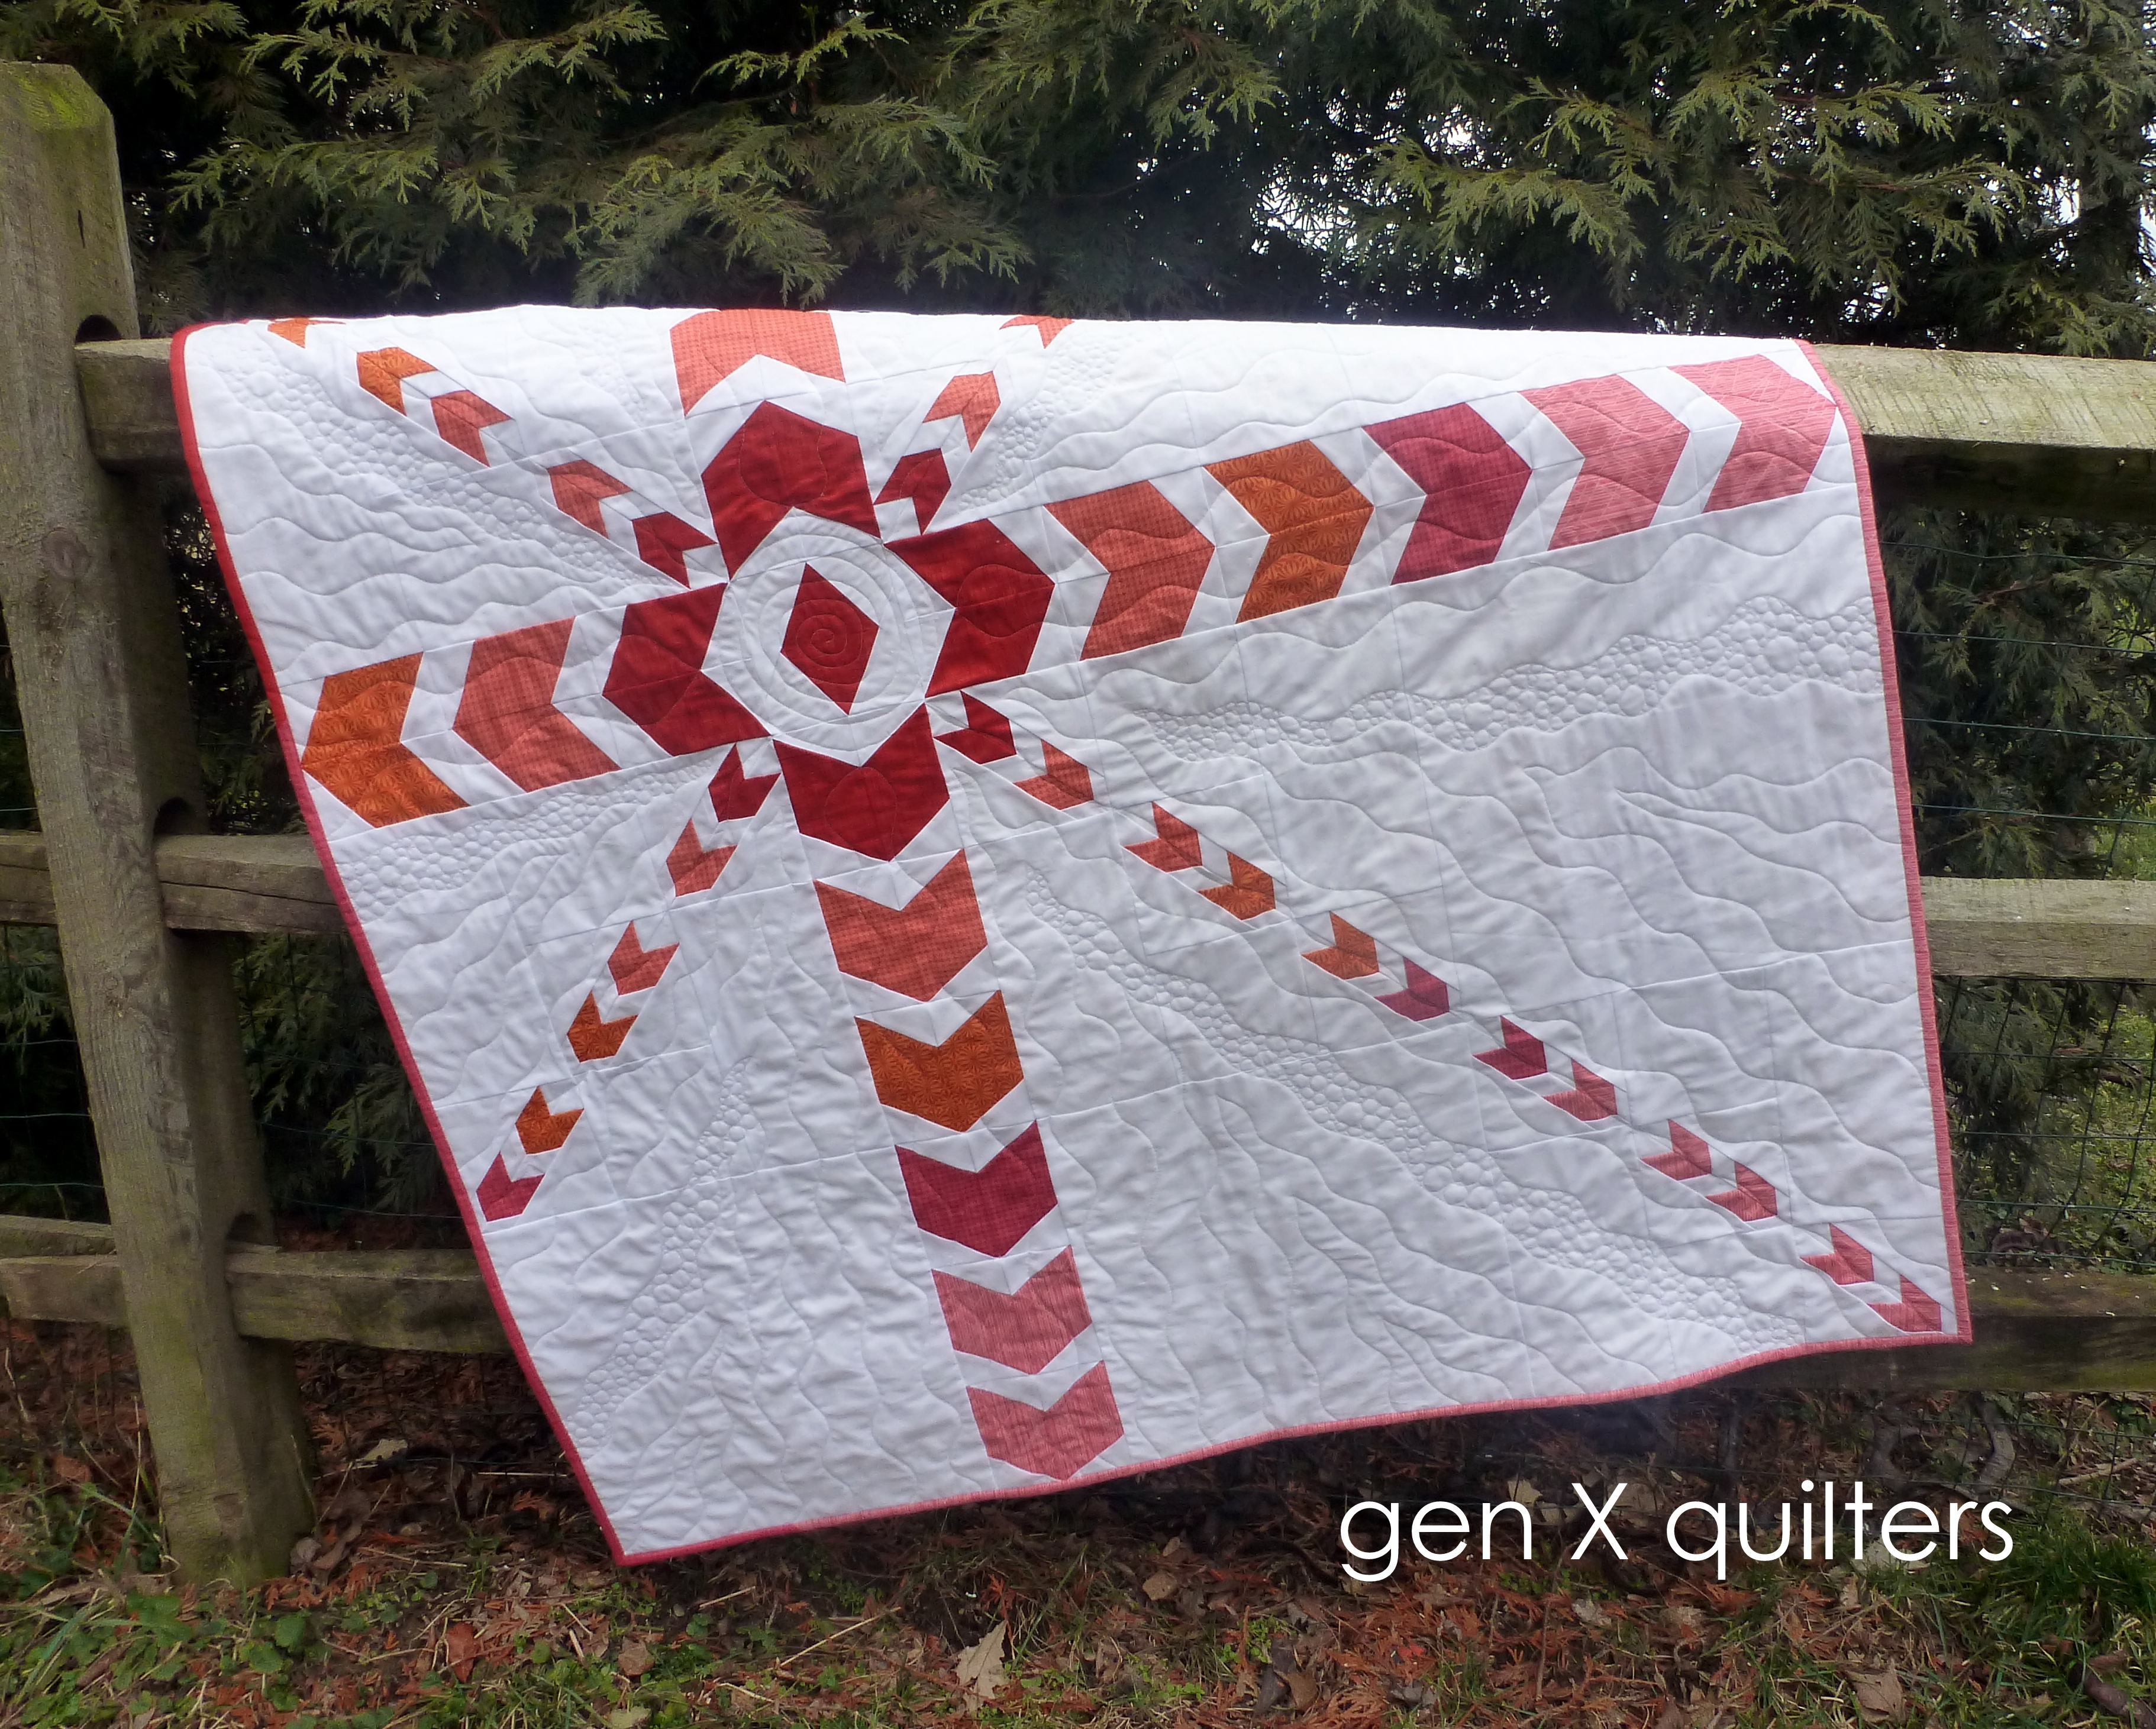 ripple quilting take 2